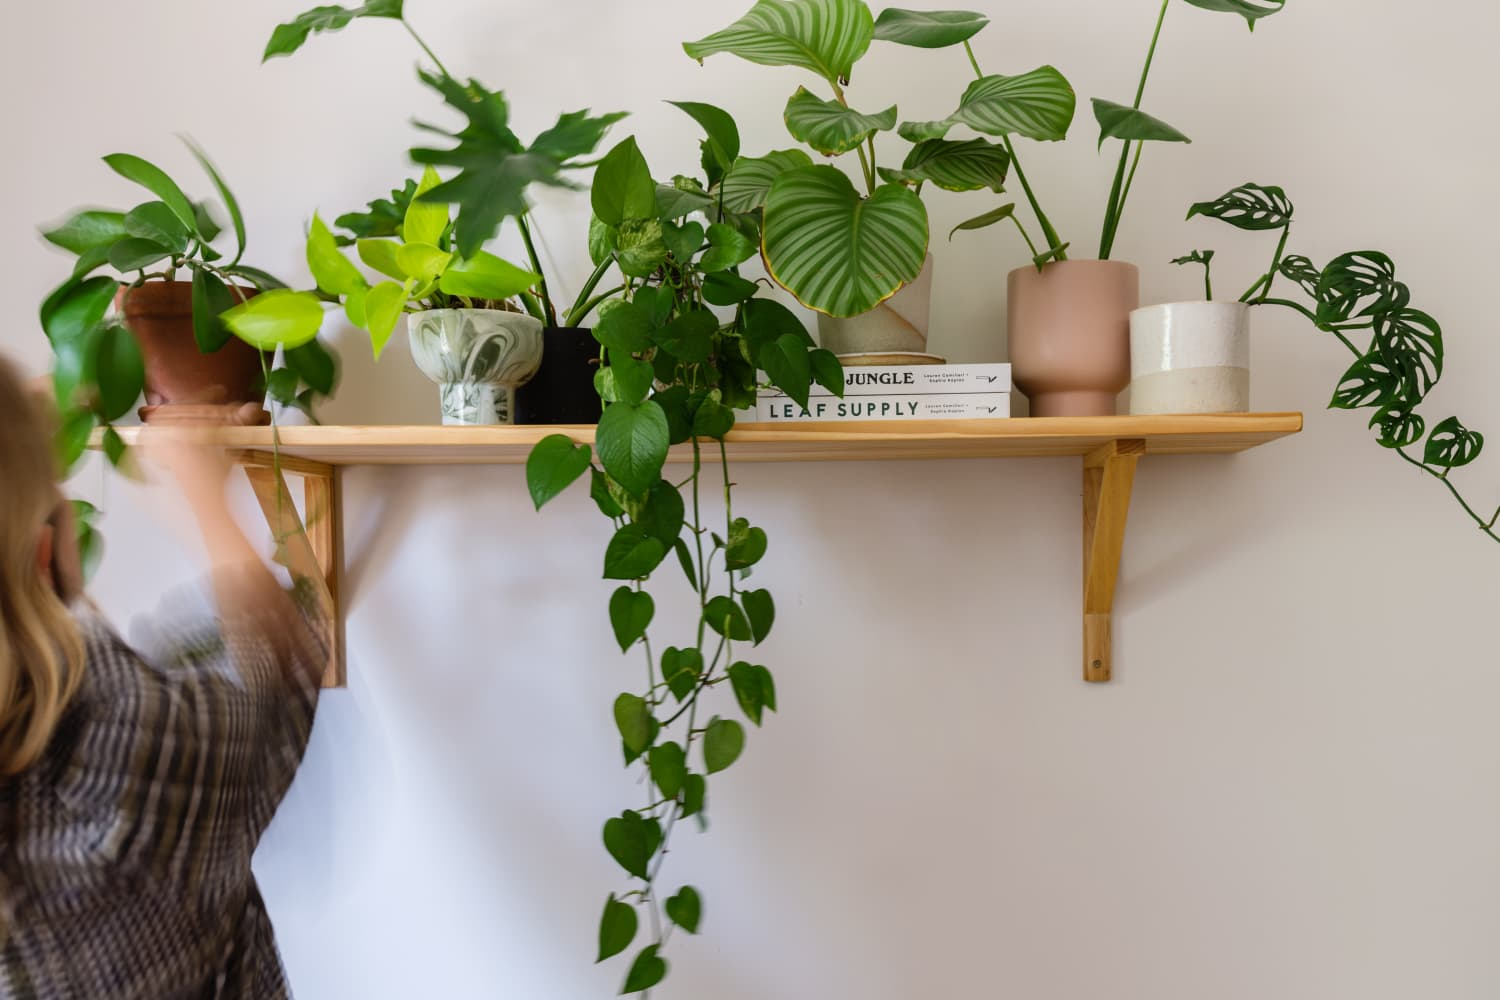 If You Want Healthy Plants, Do This Plant Expert-Approved Simple Task Every Day